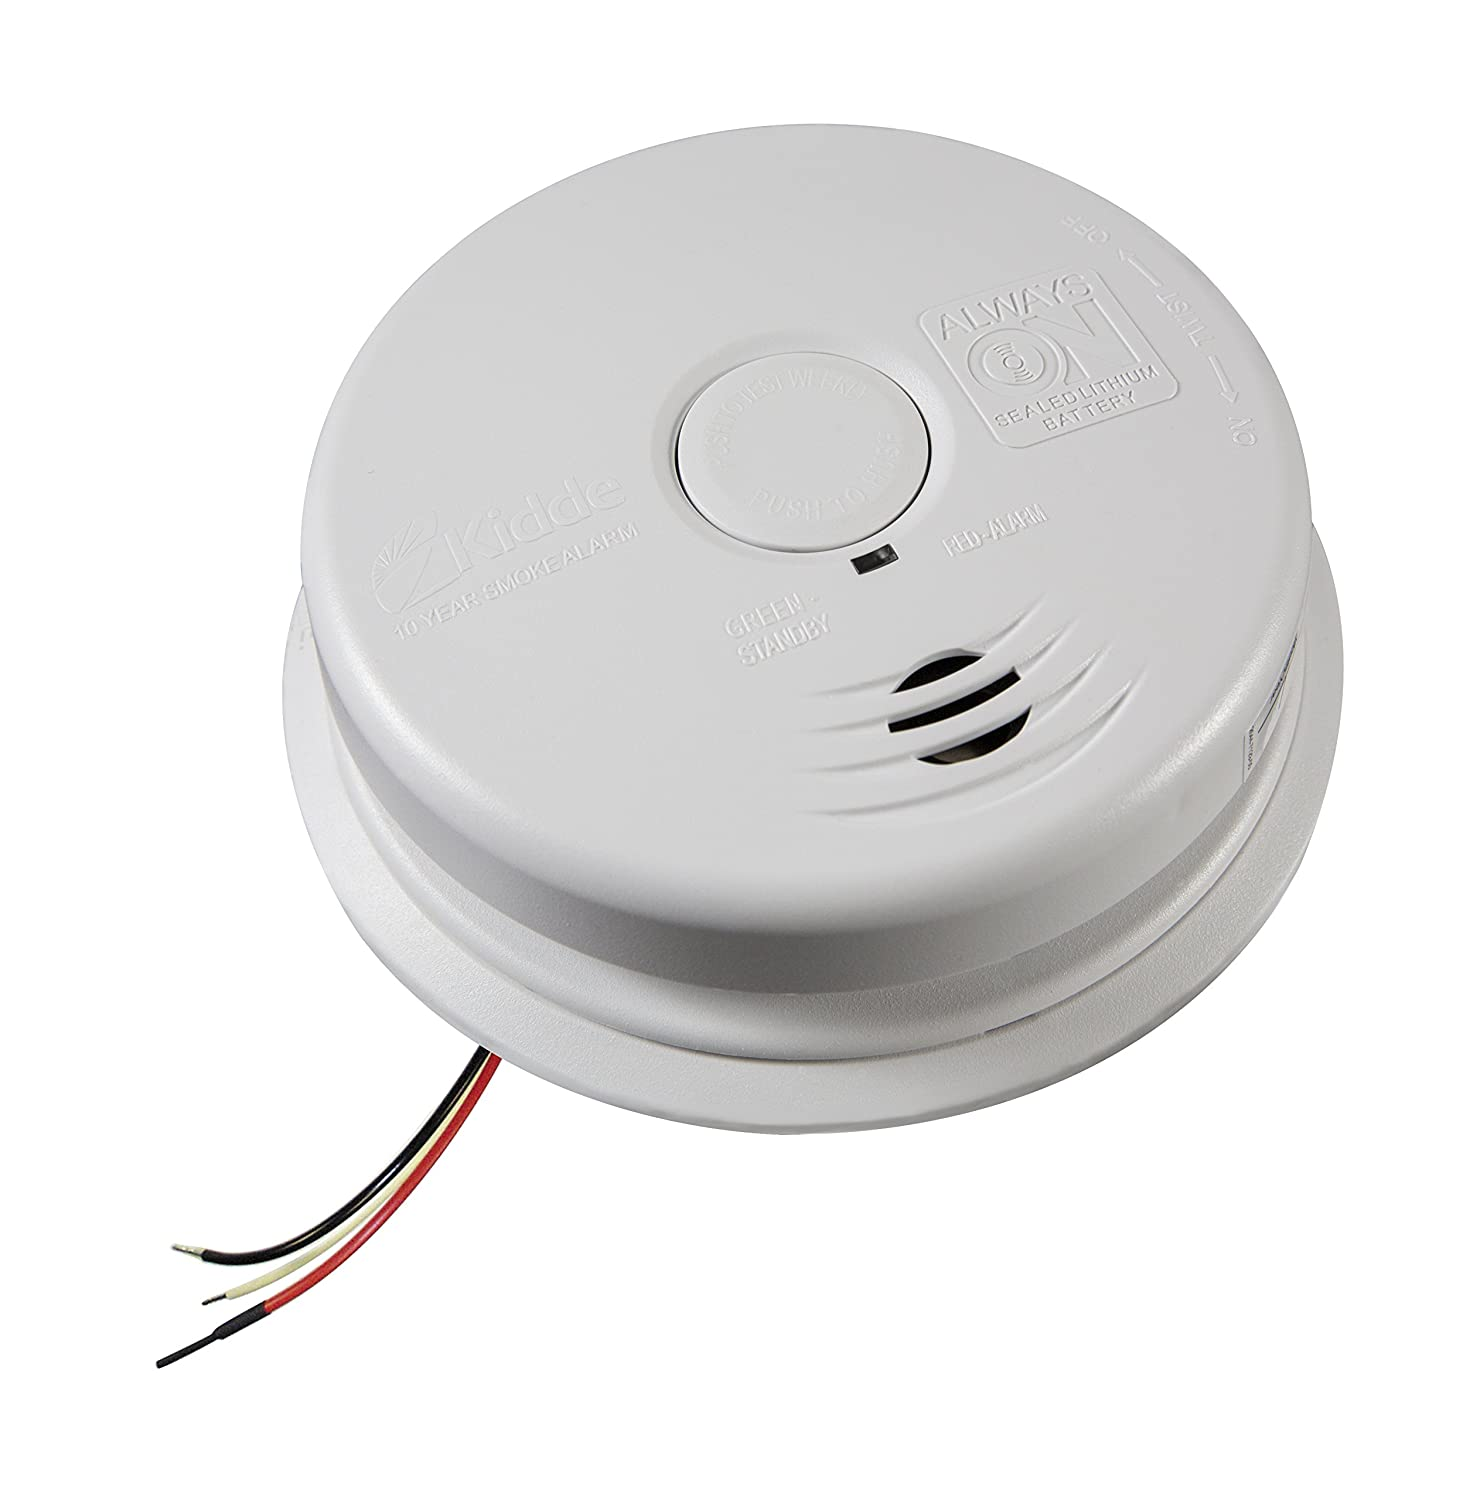 8159mAUhGkL._SL1500_ kidde i12010s hardwired smoke alarm amazon com  at n-0.co